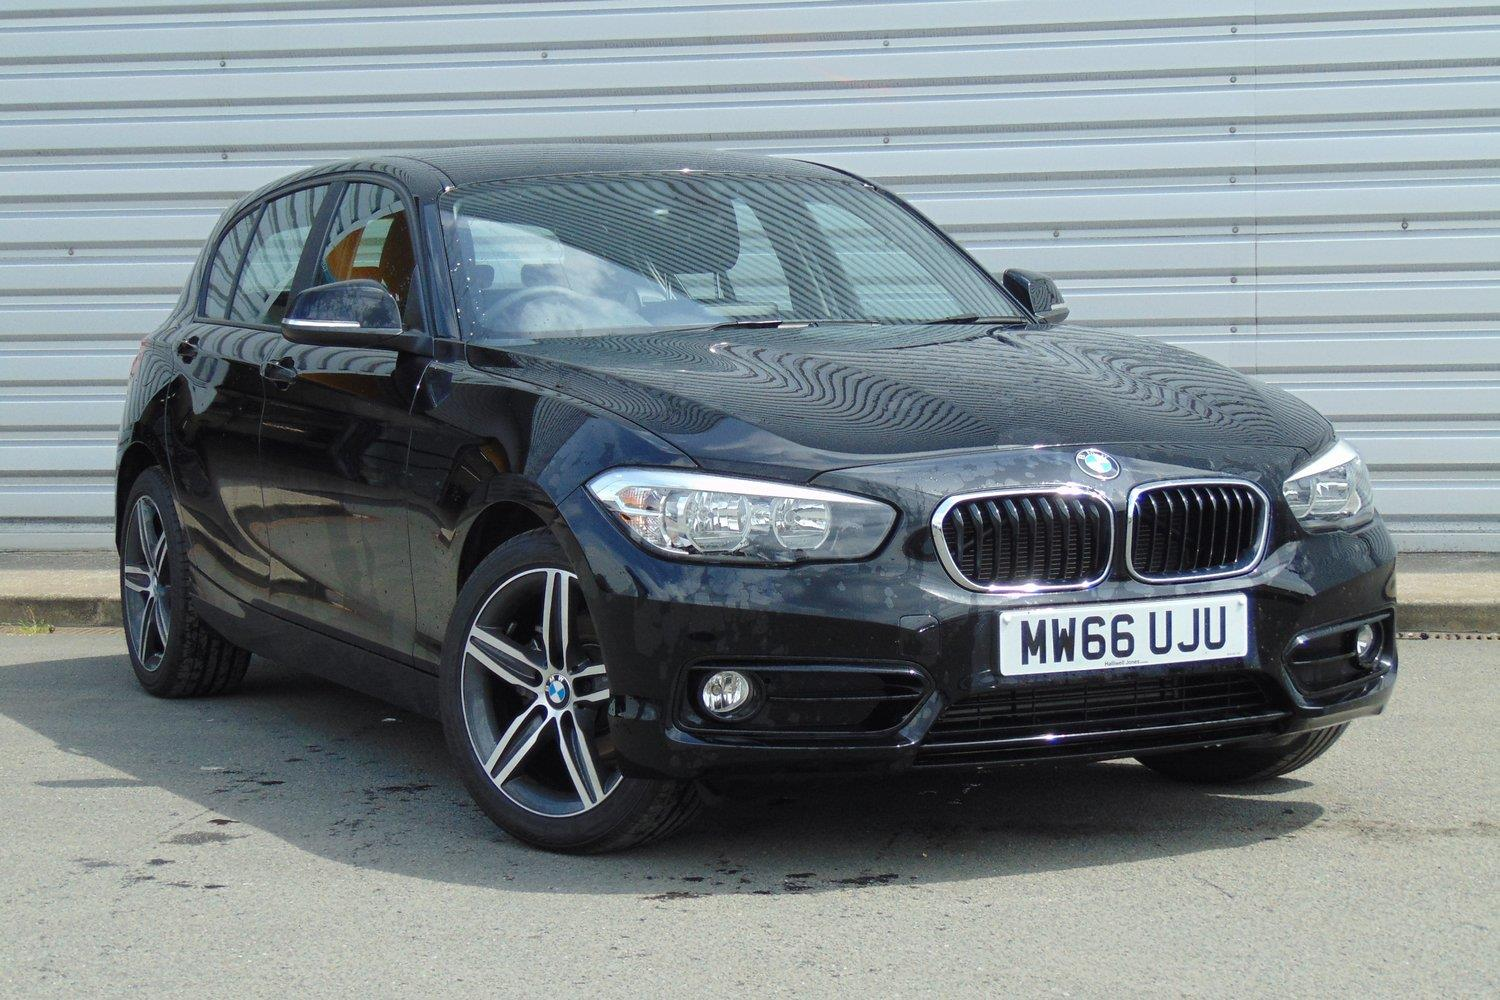 BMW 1 Series 5-door Sports Hatch MW66UJU - Image 6